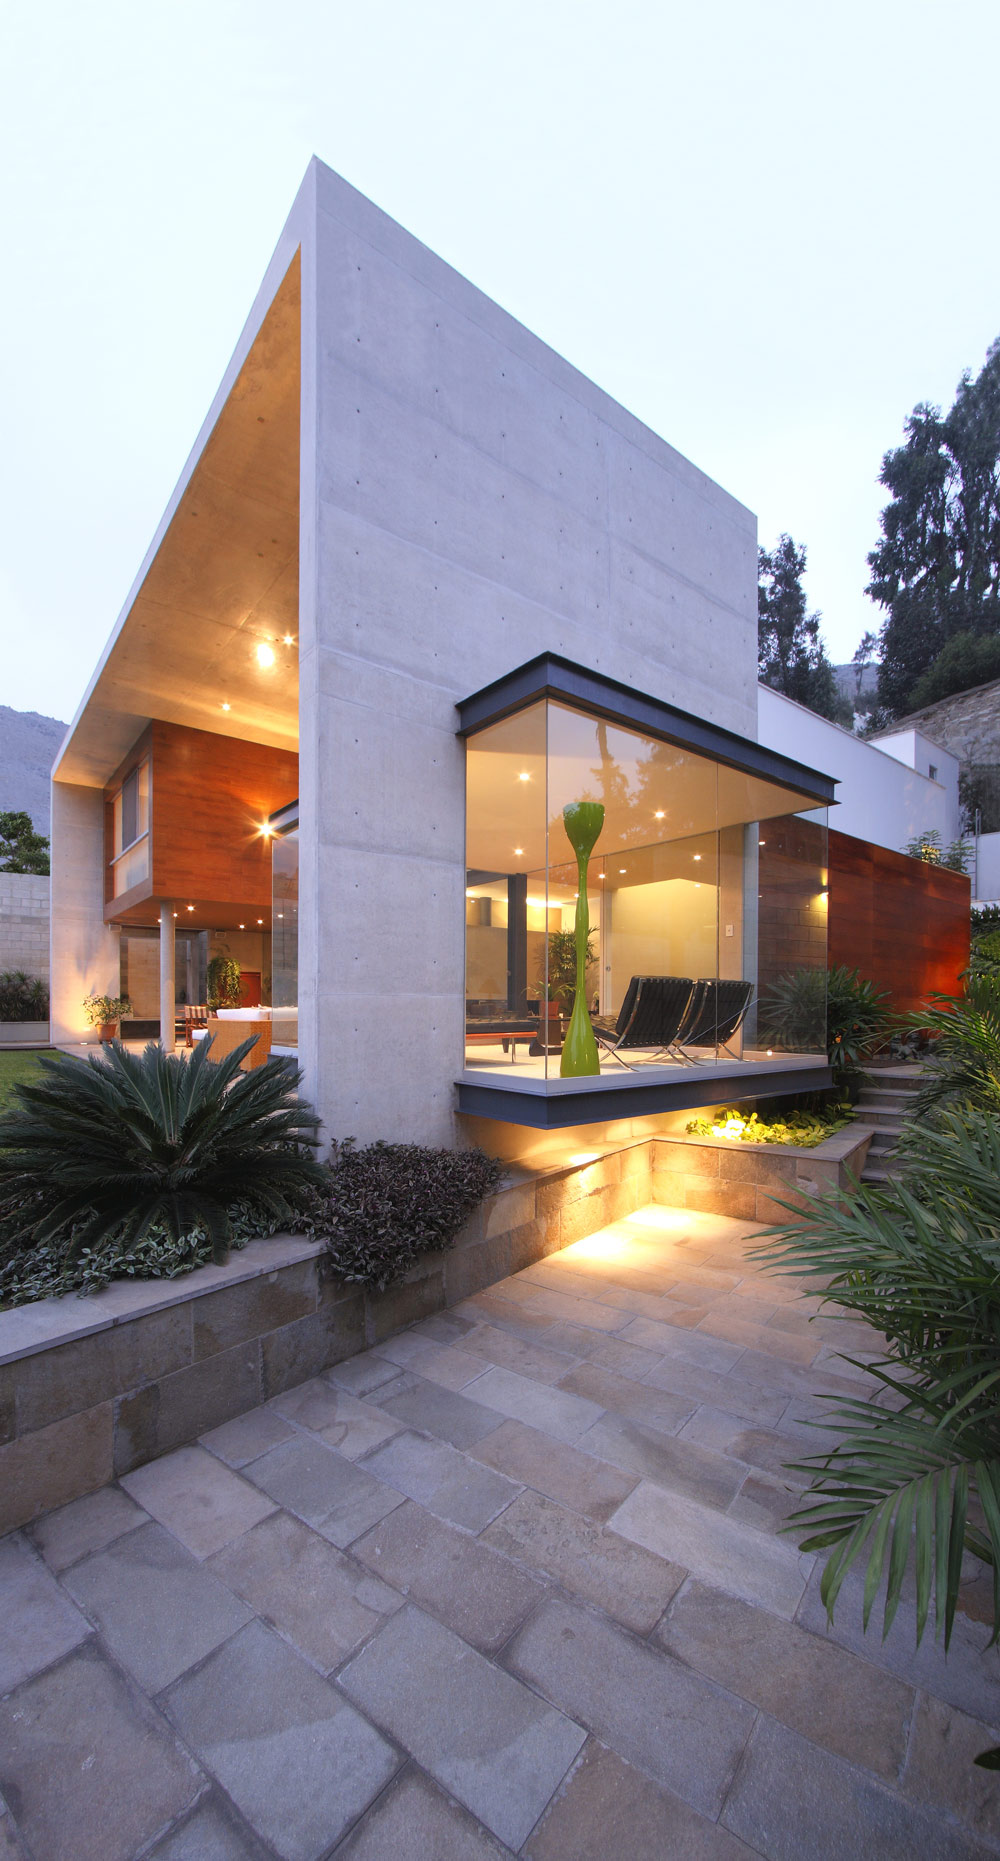 Garden, Lighting, Large Windows, Family Home in Lima, Peru